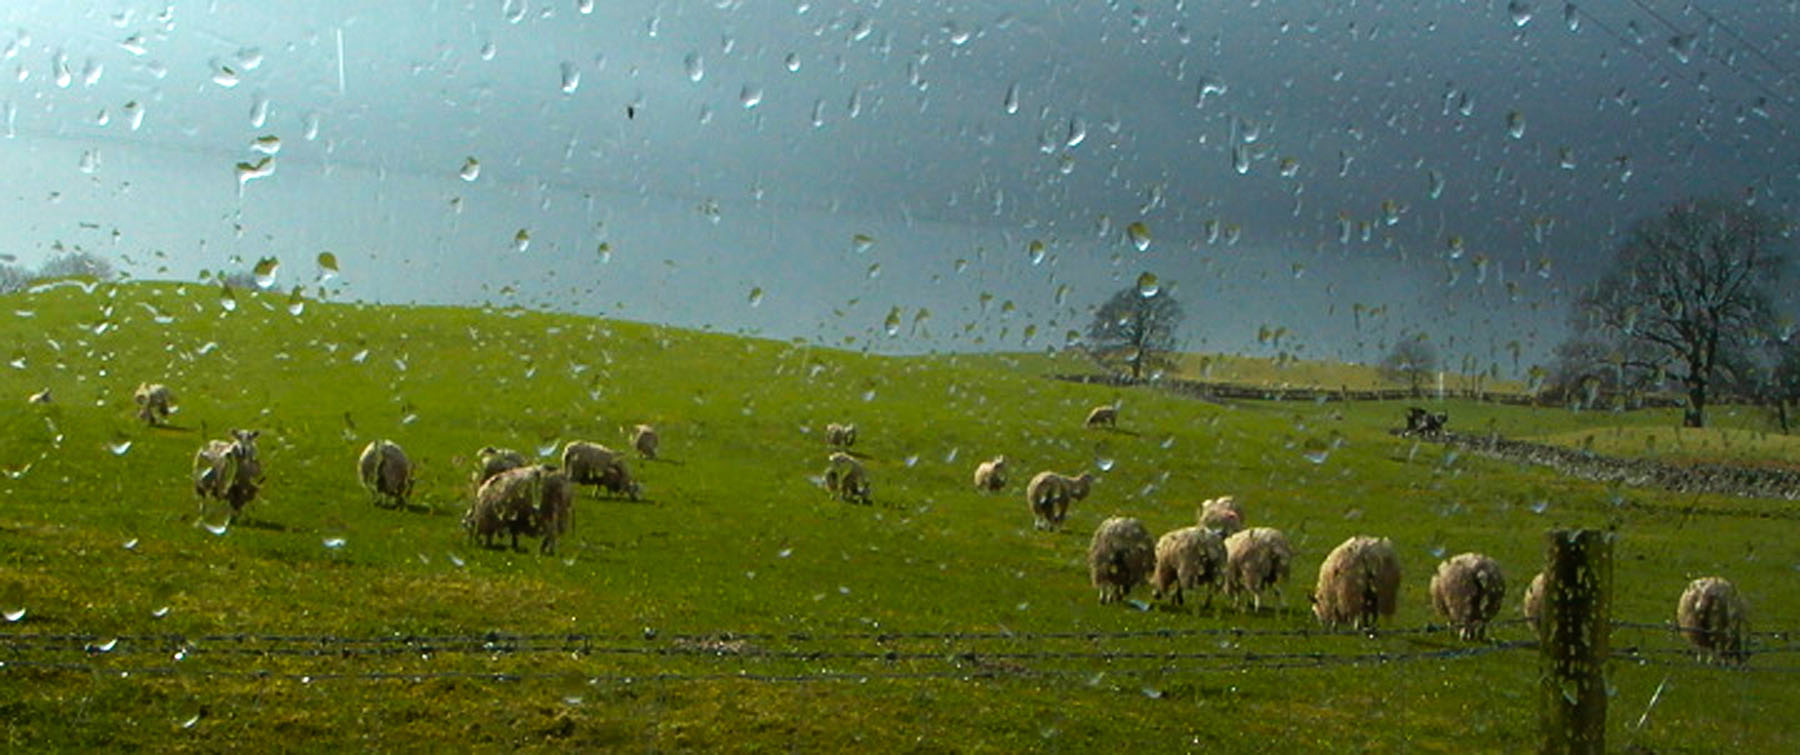 Sheep through rain, Knocktower, Southwest Scotland